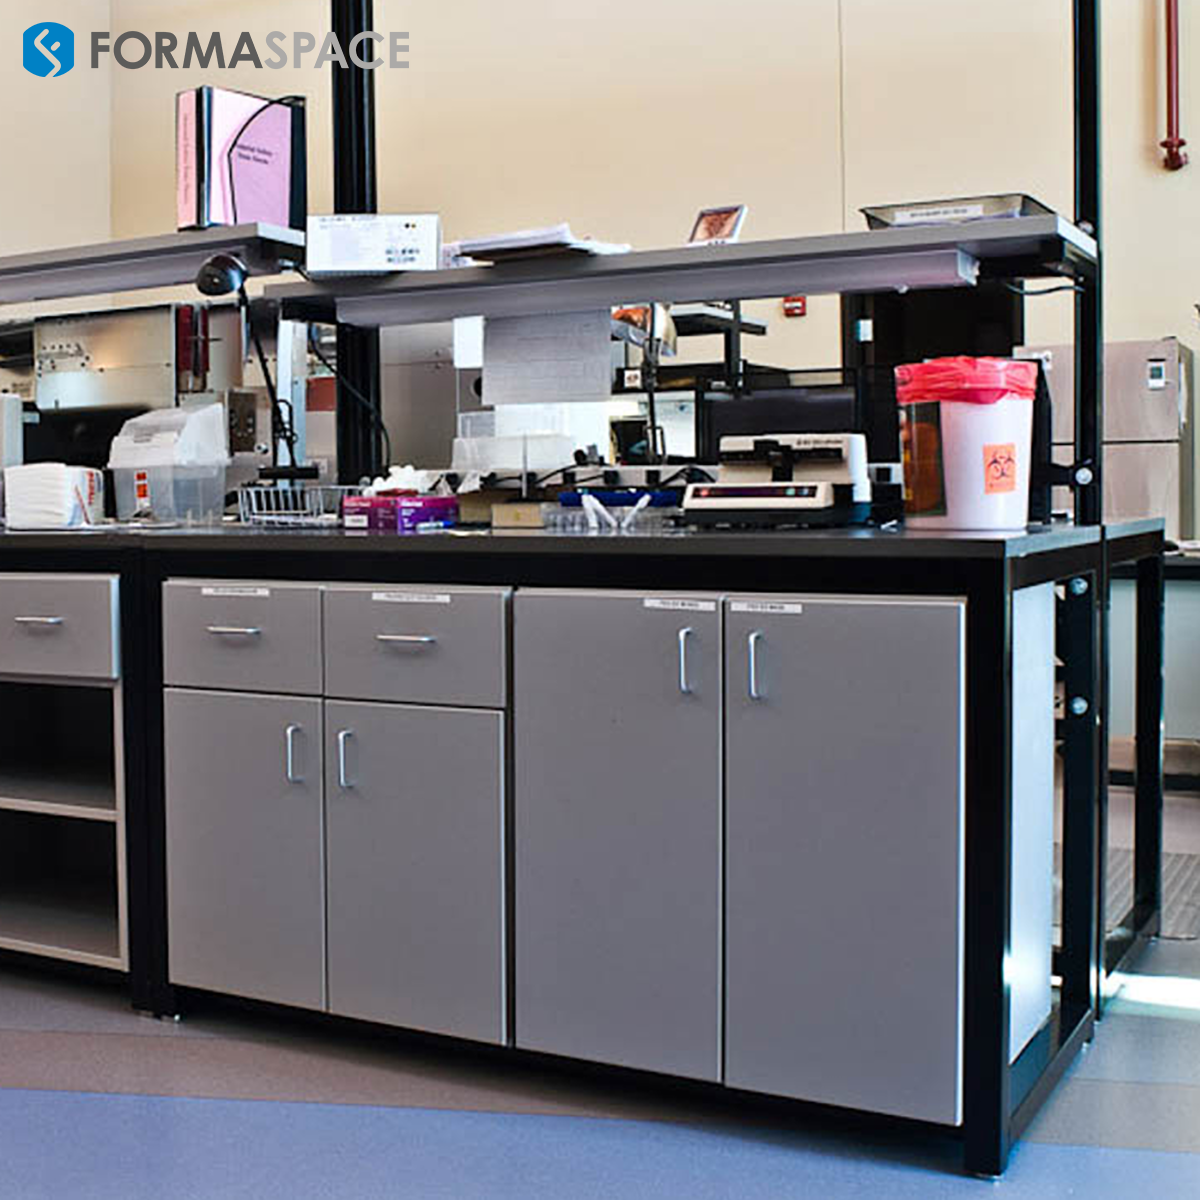 Pathology Workbench Designed for Efficiency and Organization